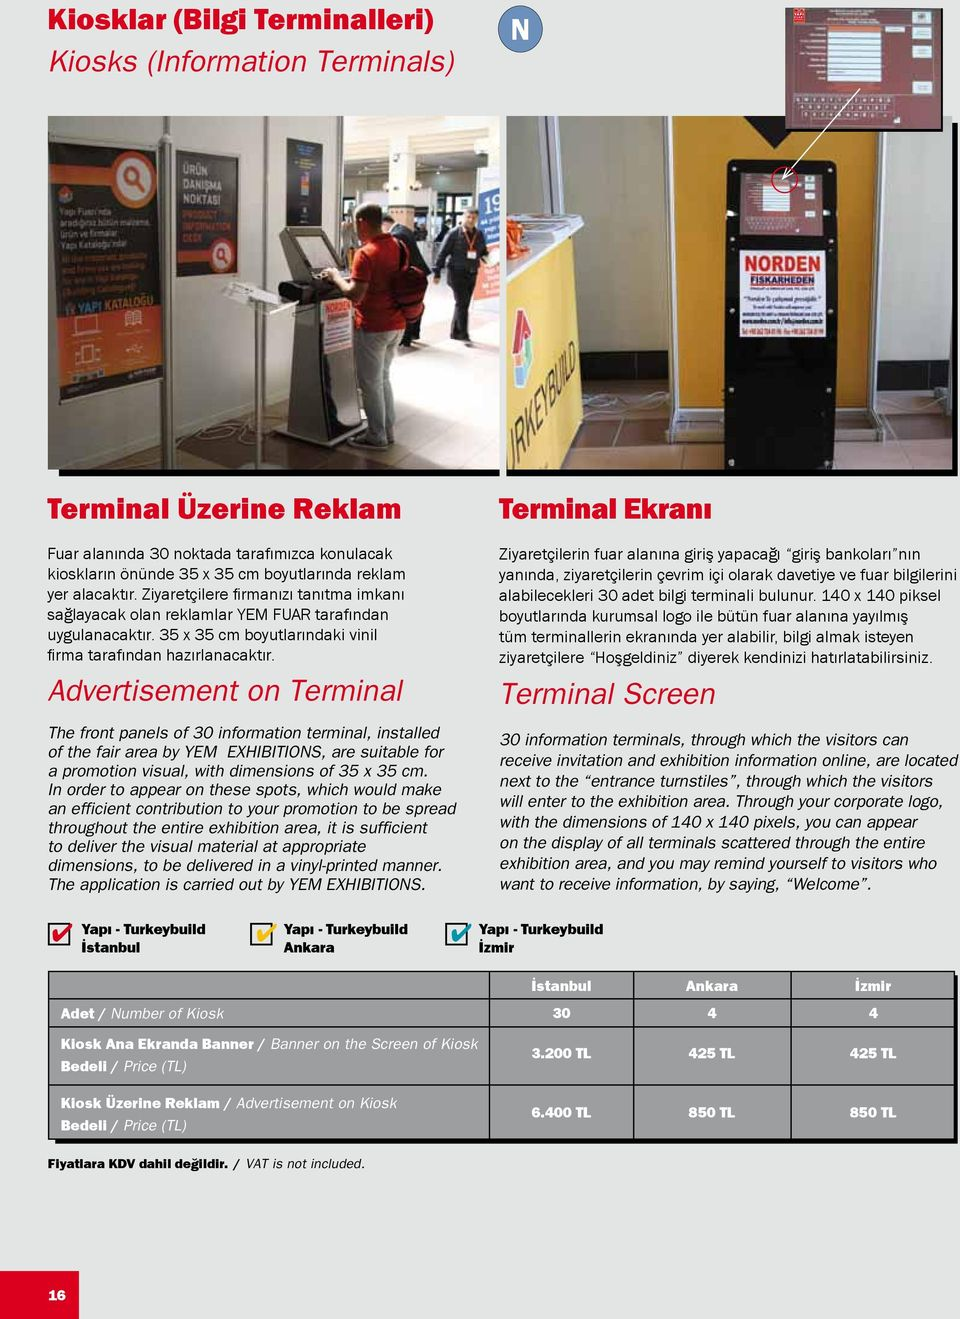 Advertisement on Terminal The front panels of 30 information terminal, installed of the fair area by YEM EXHIBITIONS, are suitable for a promotion visual, with dimensions of 35 x 35 cm.